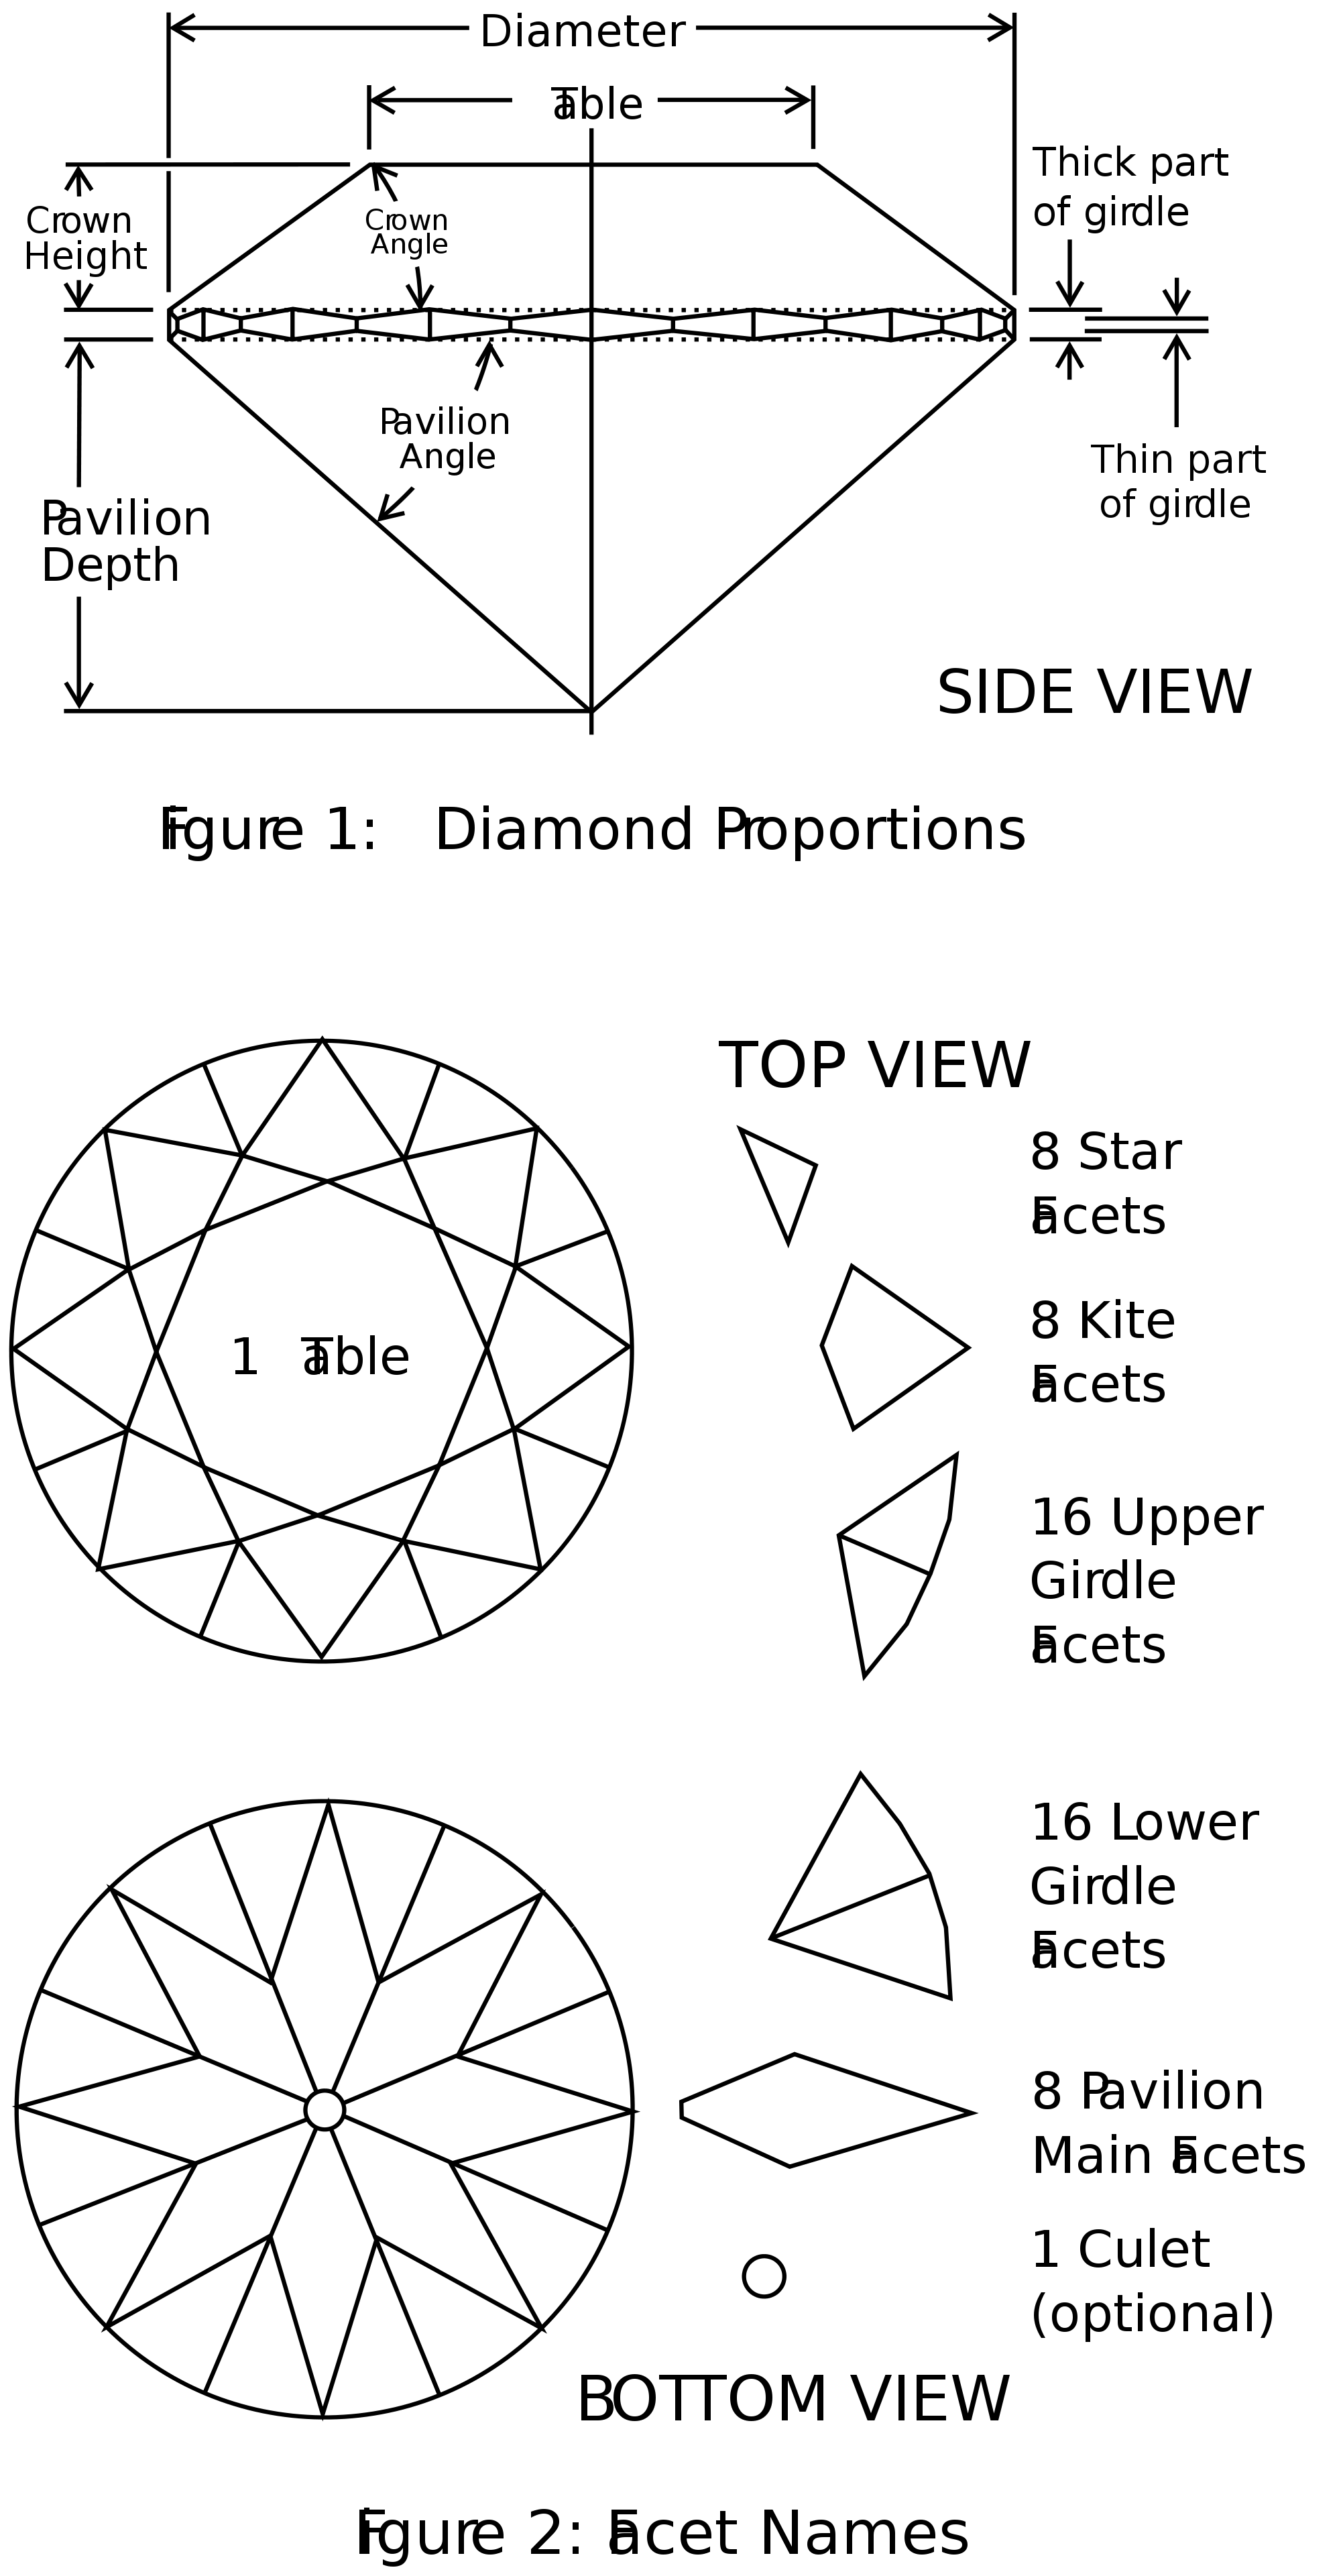 facet aset about grading whiteflash education htm view diamonds diamond ags hemisphere top cut scale